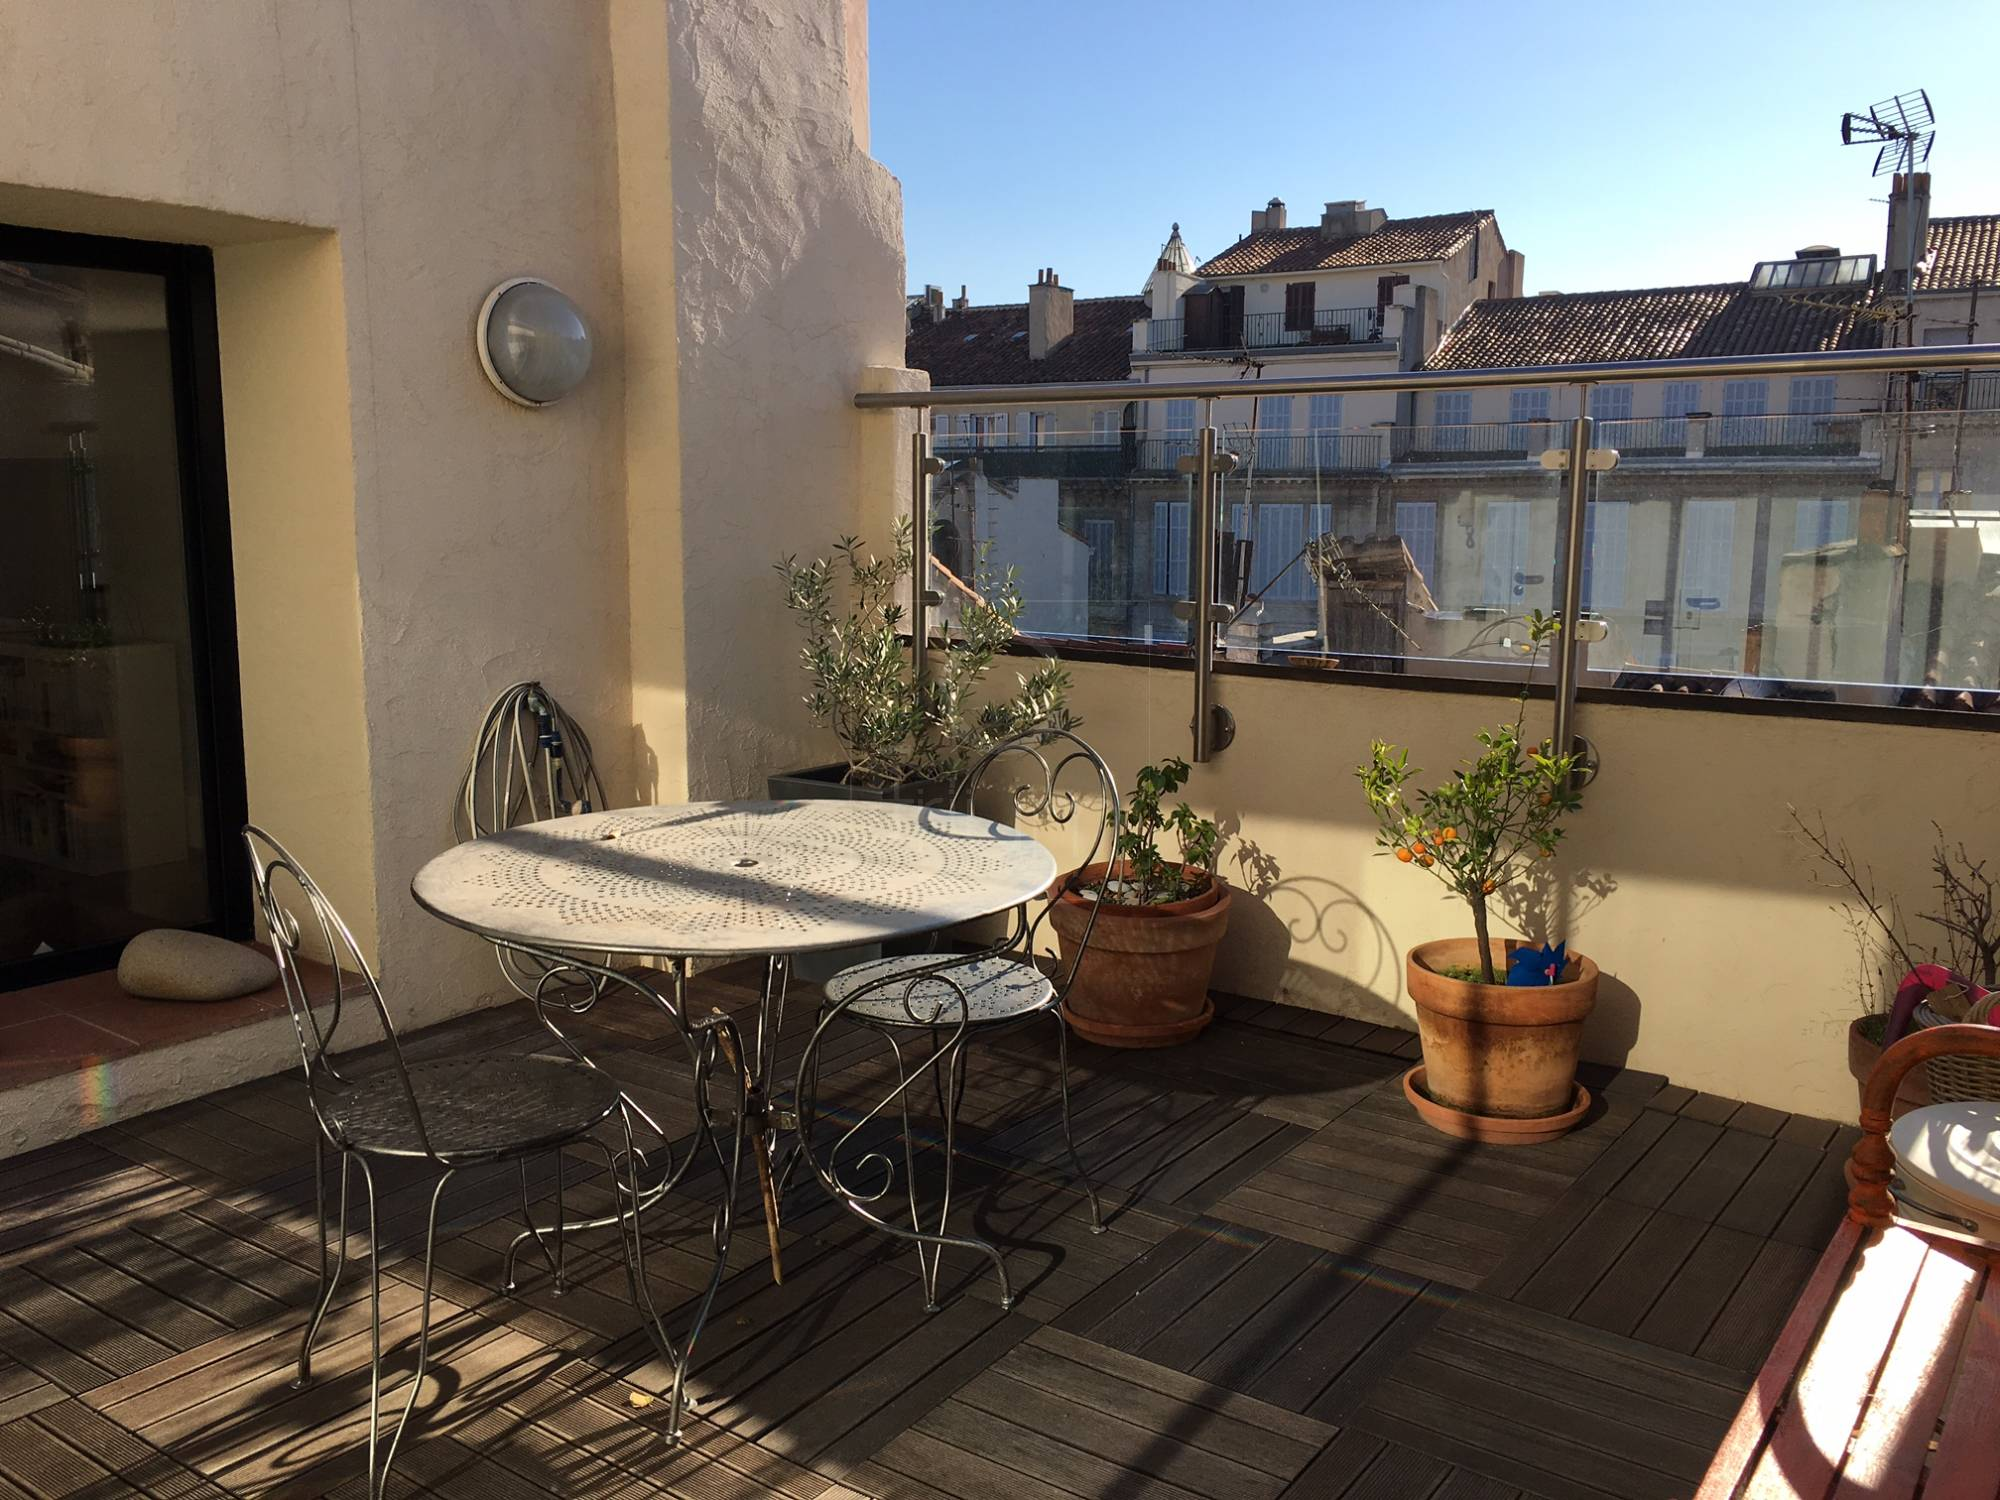 Vente appartement t5 f5 marseille paradis breteuil agence for Marseille vente appartement